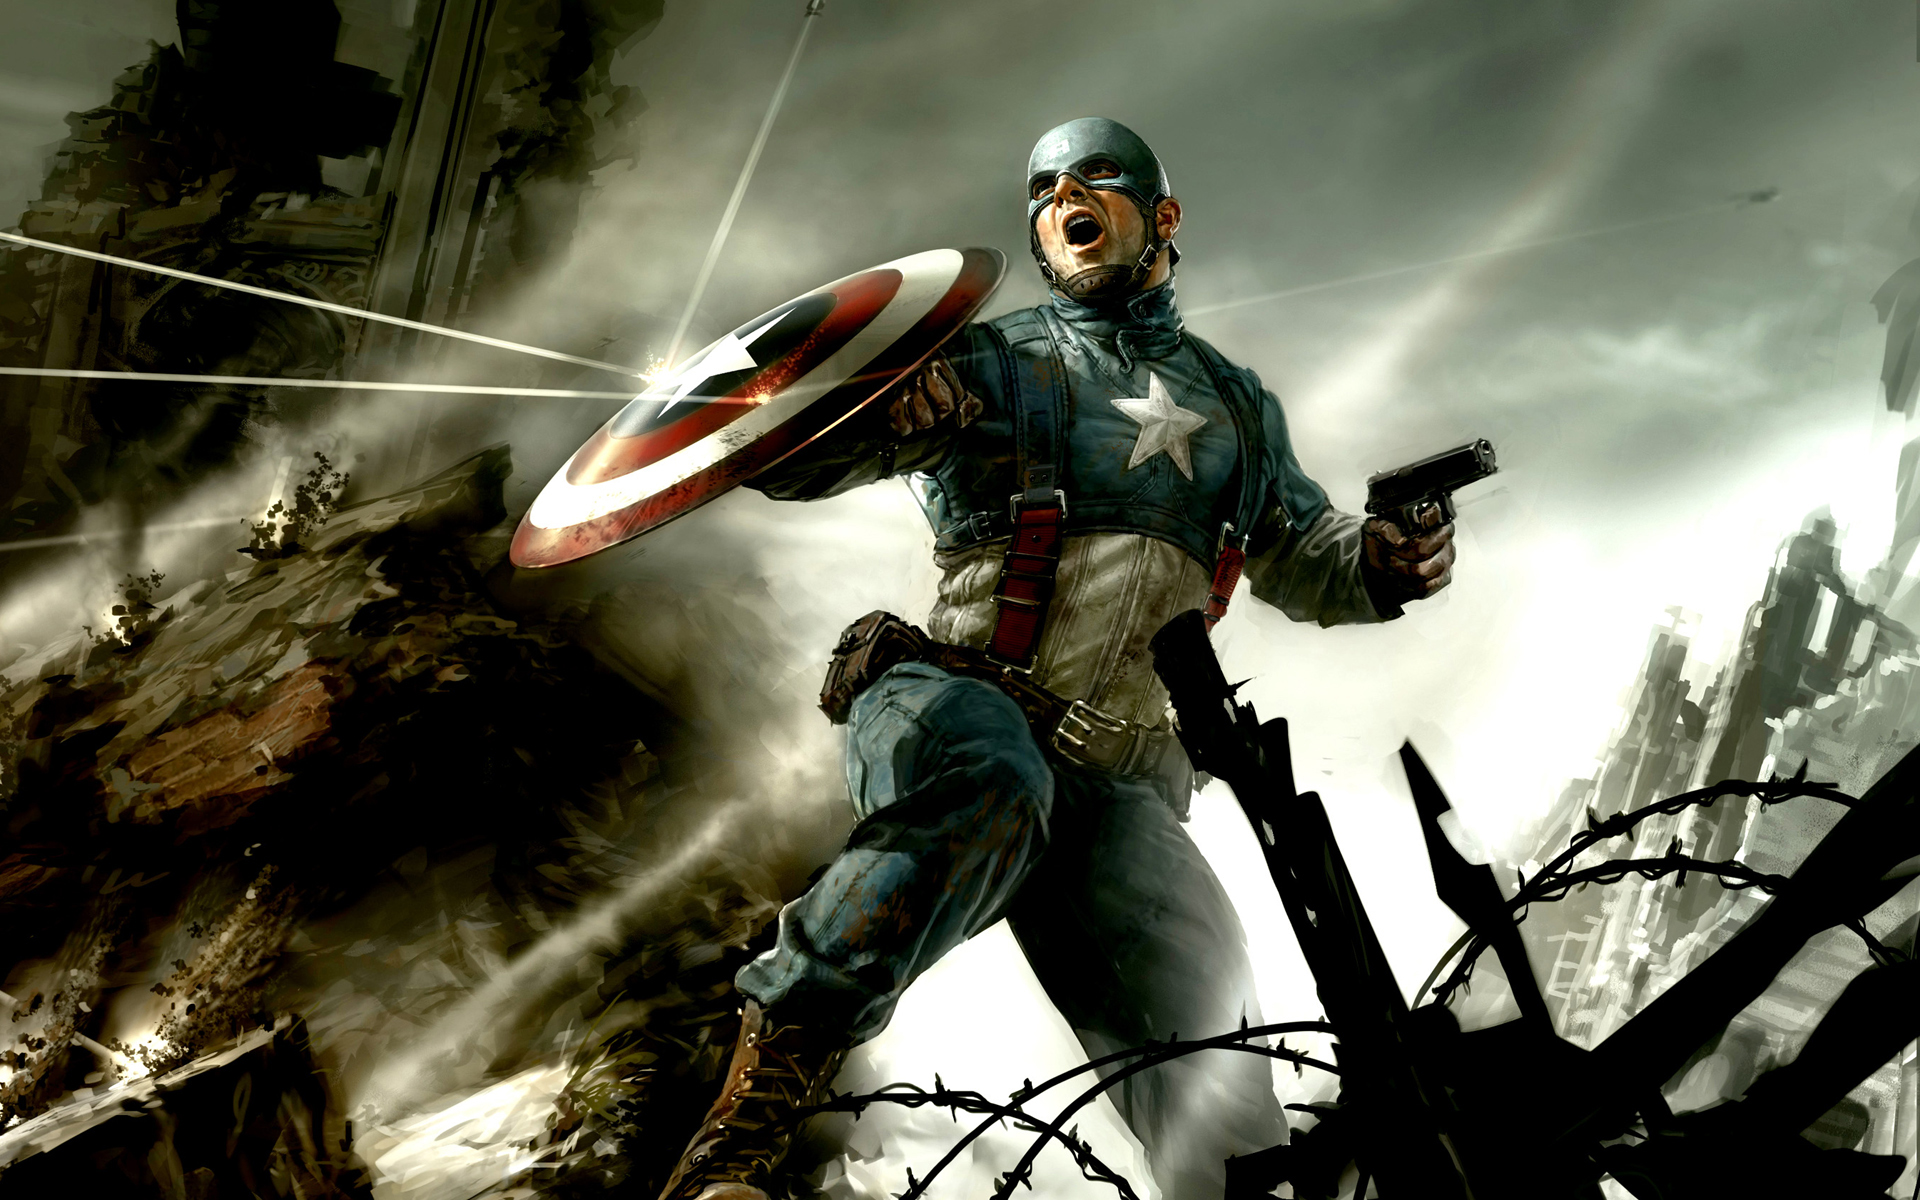 Hd wallpaper of captain america - Captain America Cg Wallpapers Hd Wallpapers